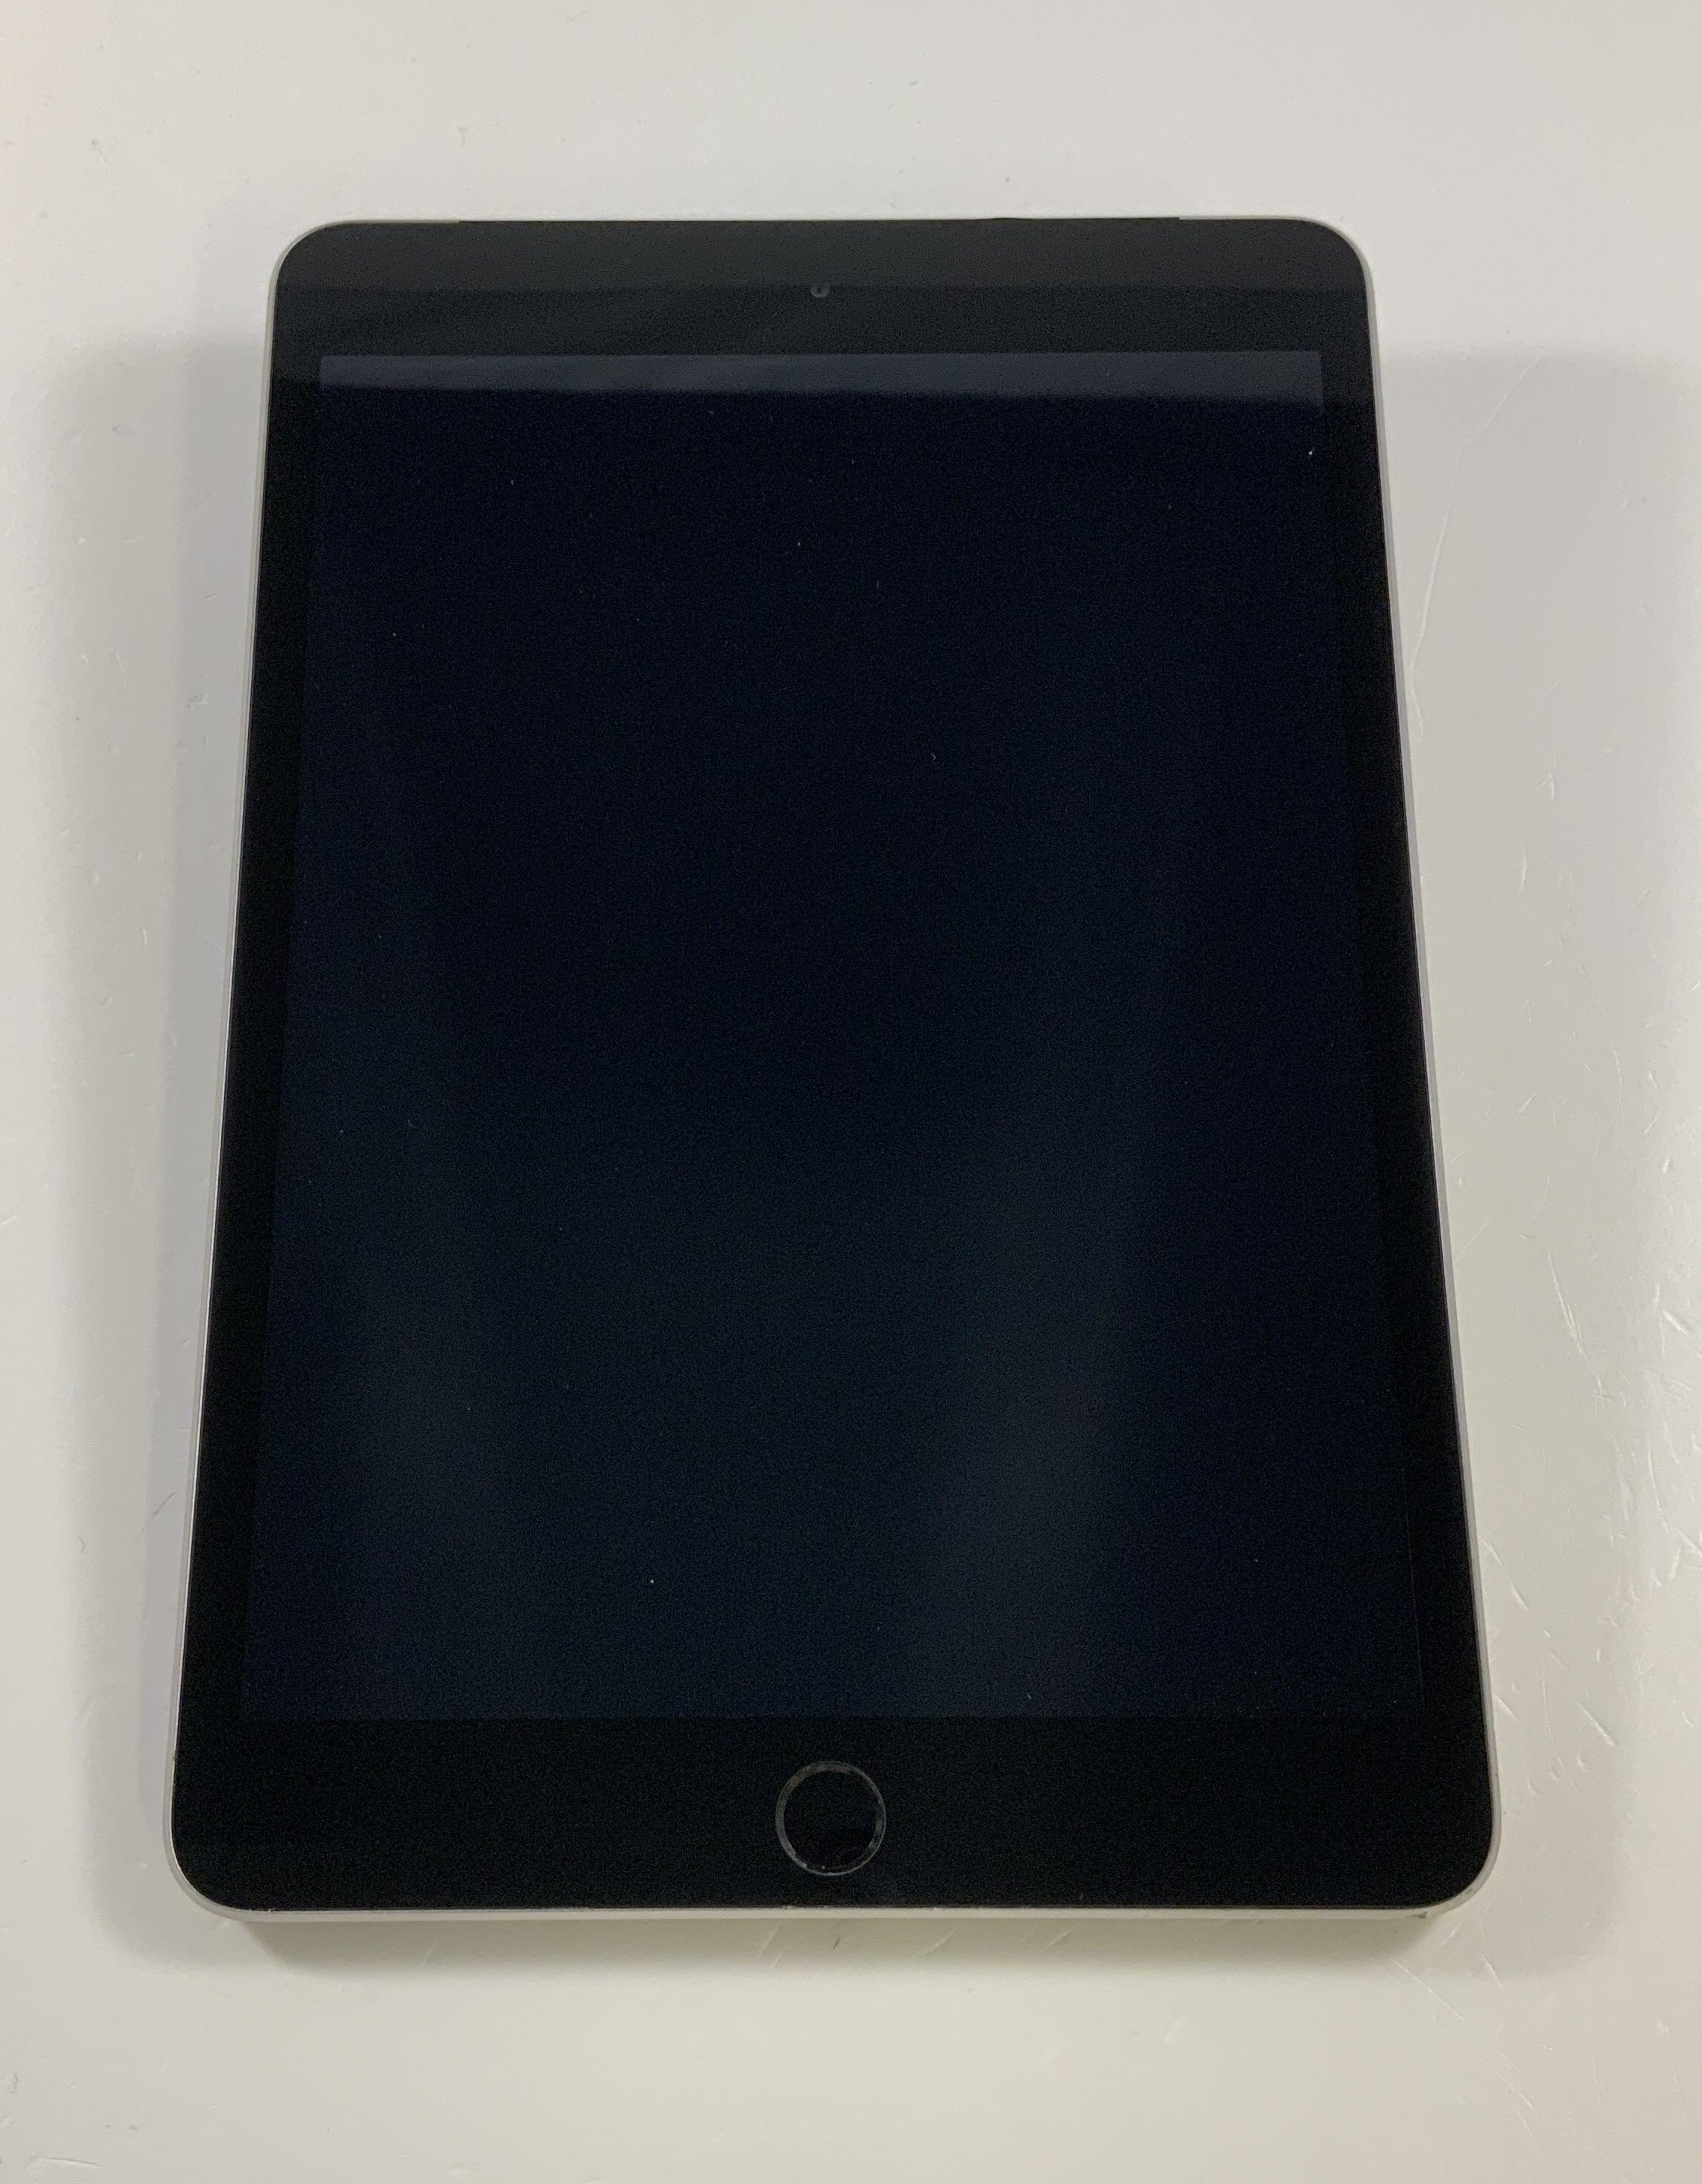 iPad mini 3 Wi-Fi + Cellular 64GB, 64GB, Space Gray, imagen 1